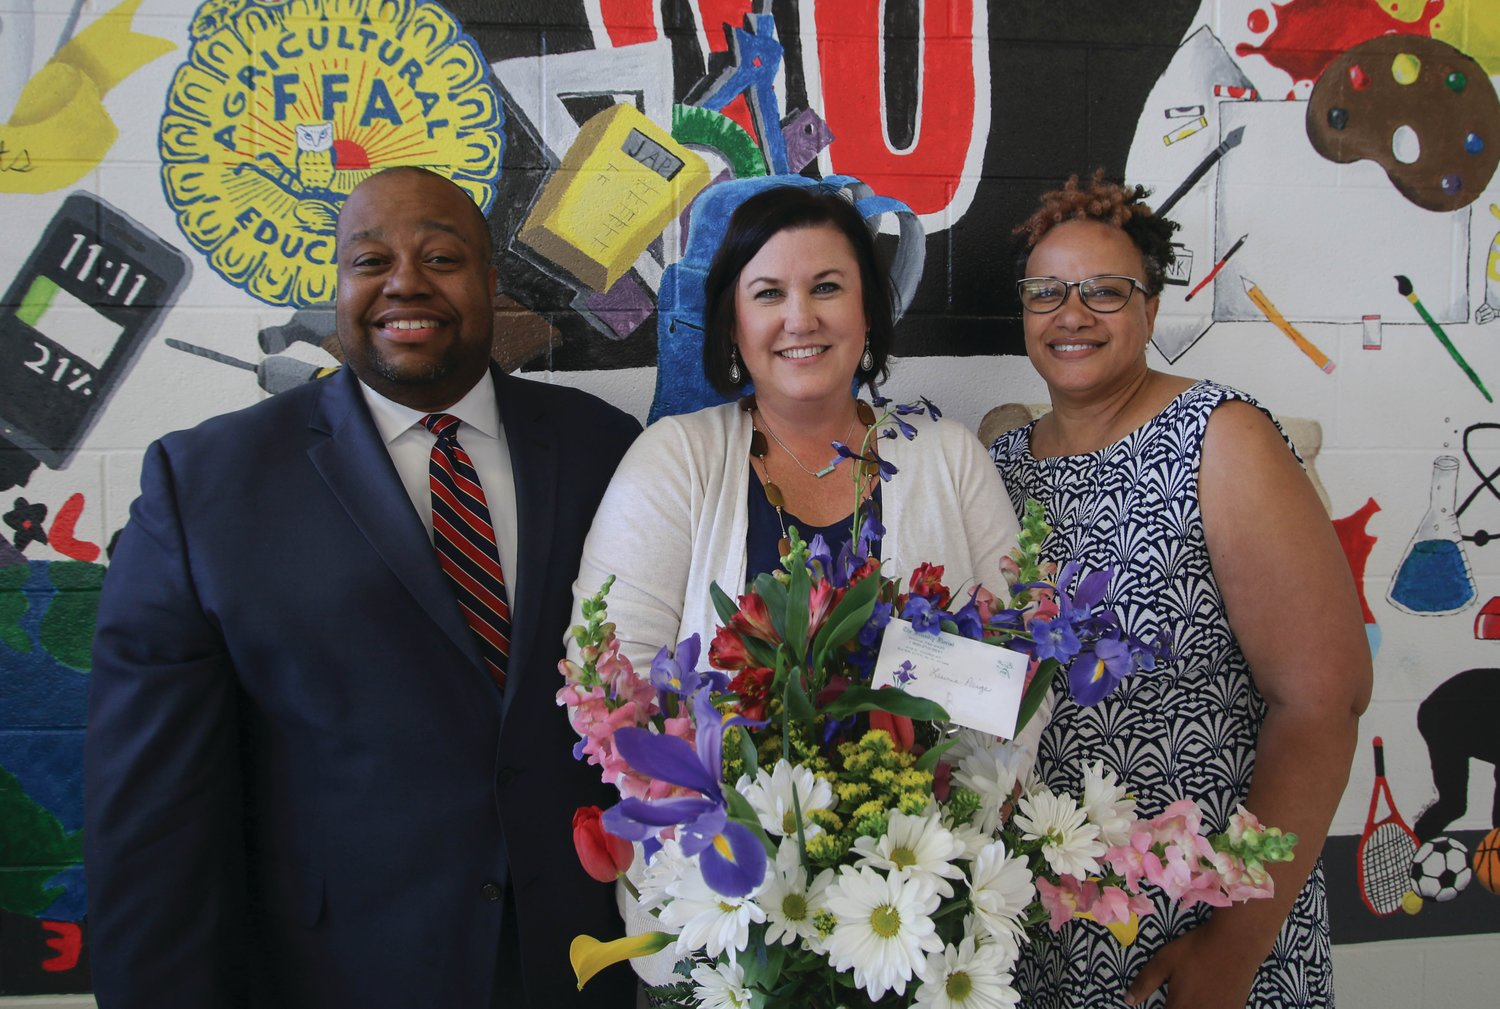 Chatham Central High School educator Laurie Paige (center), the reigning Chatham County Schools Teacher of the Year, is pictured with Chatham County Schools Superintendent Dr. Derrick D. Jordan and Chatham Central Principal Dr. Karla Eanes.